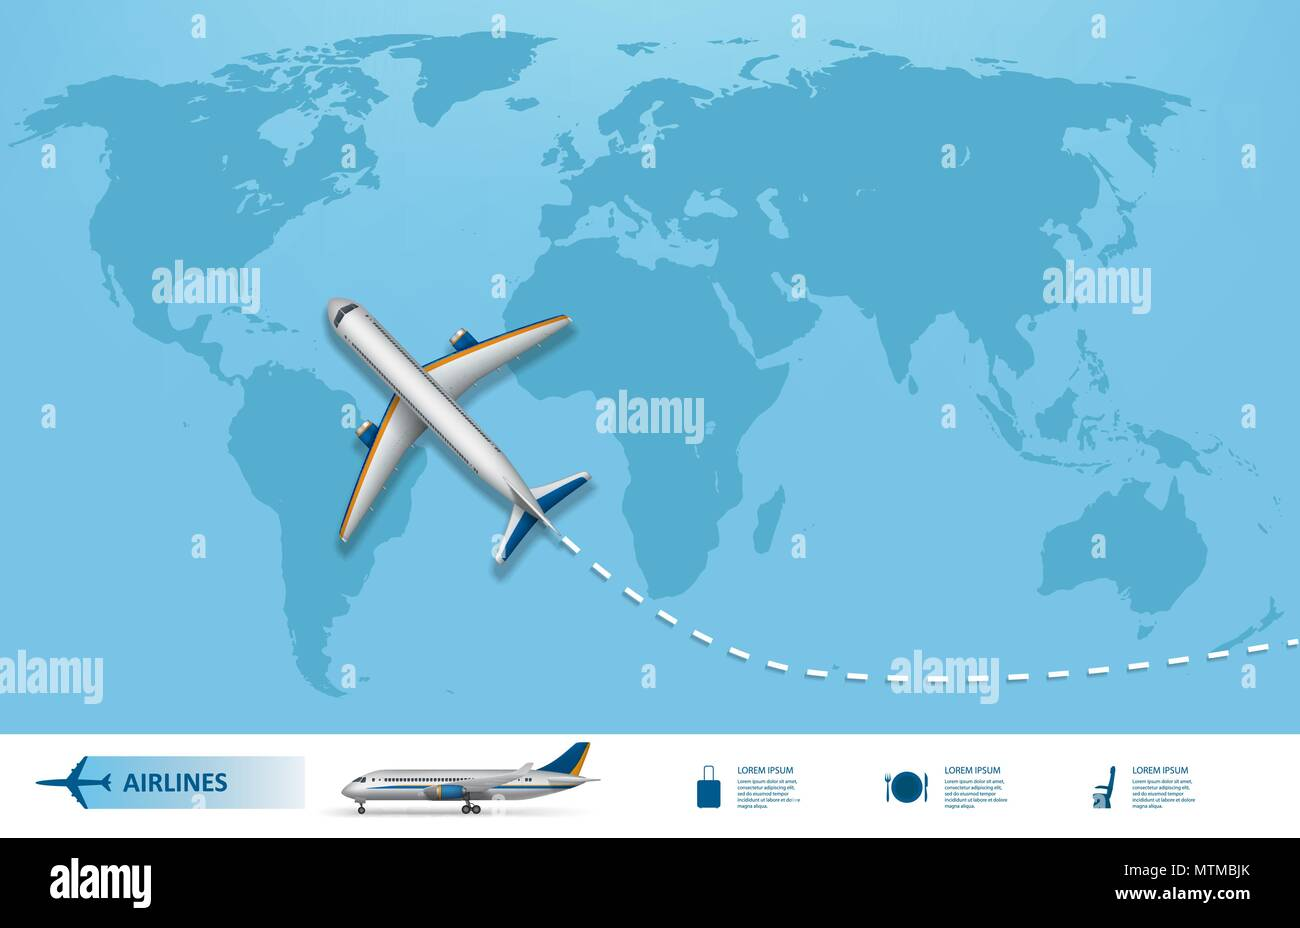 Business trip banner with airplane and world map background business trip banner with airplane and world map background realistic aircraft travel concept flight travel world map vector illustration gumiabroncs Choice Image